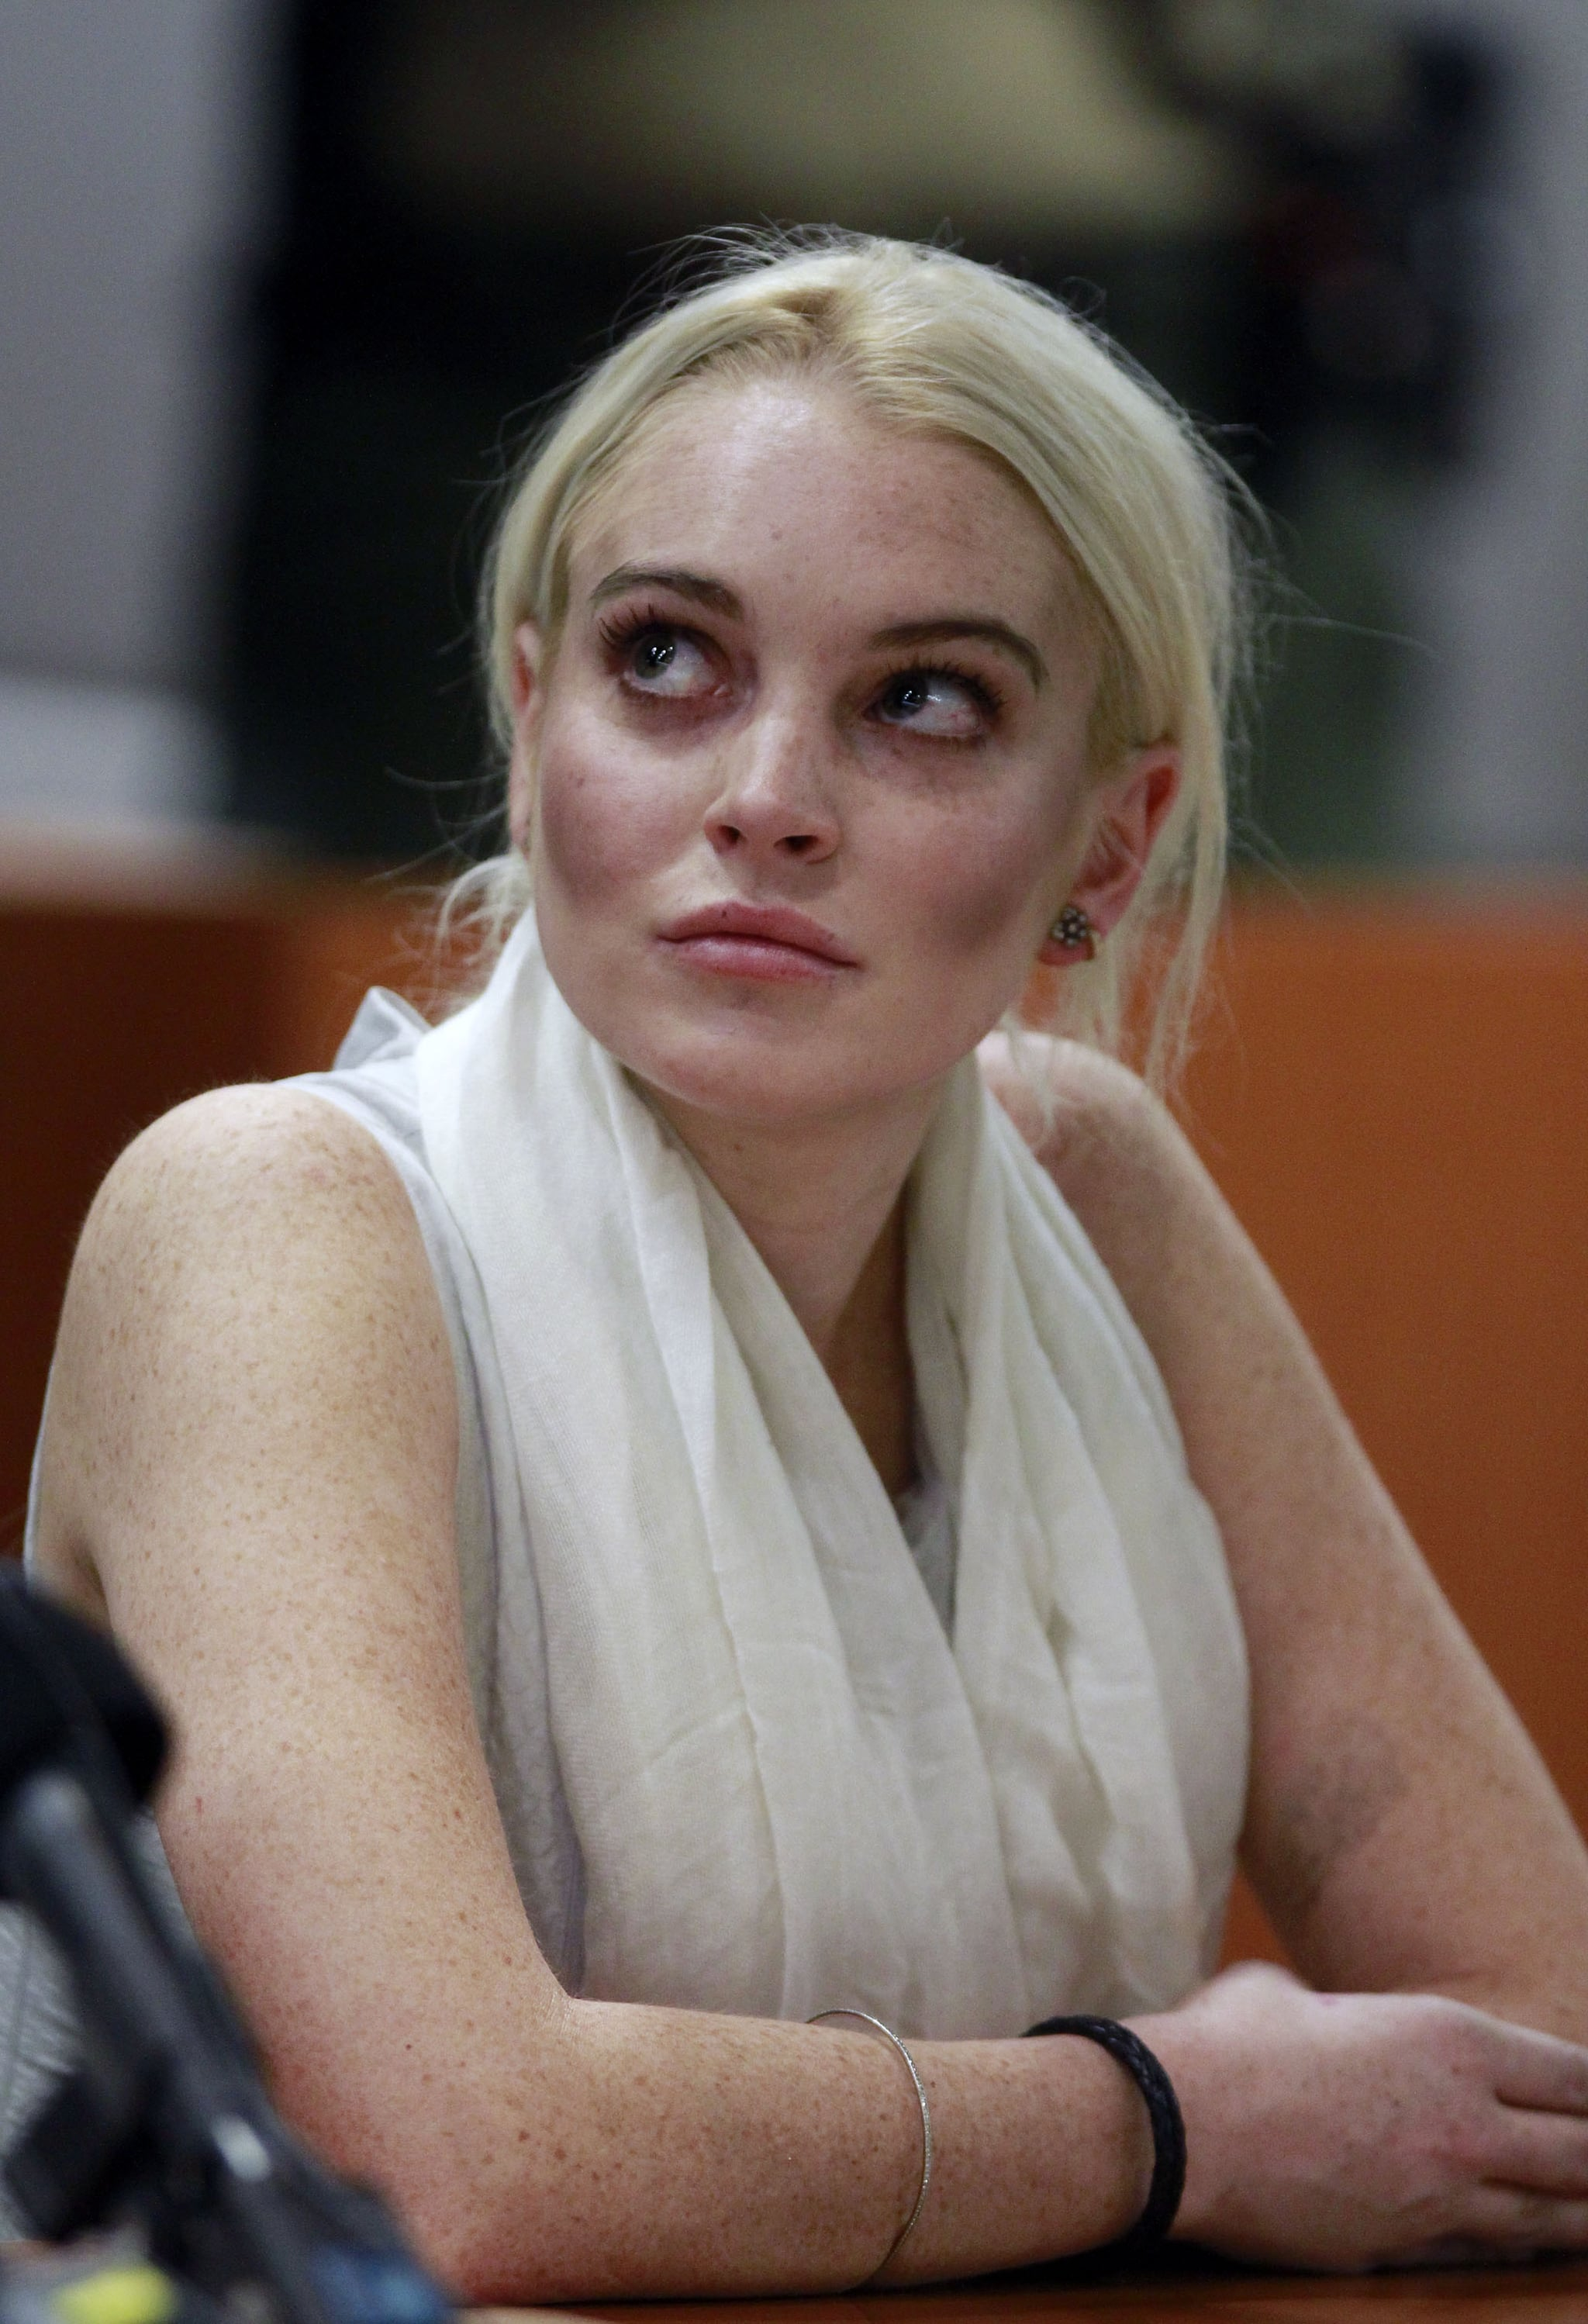 Lindsay Lohan looked to her attorney.